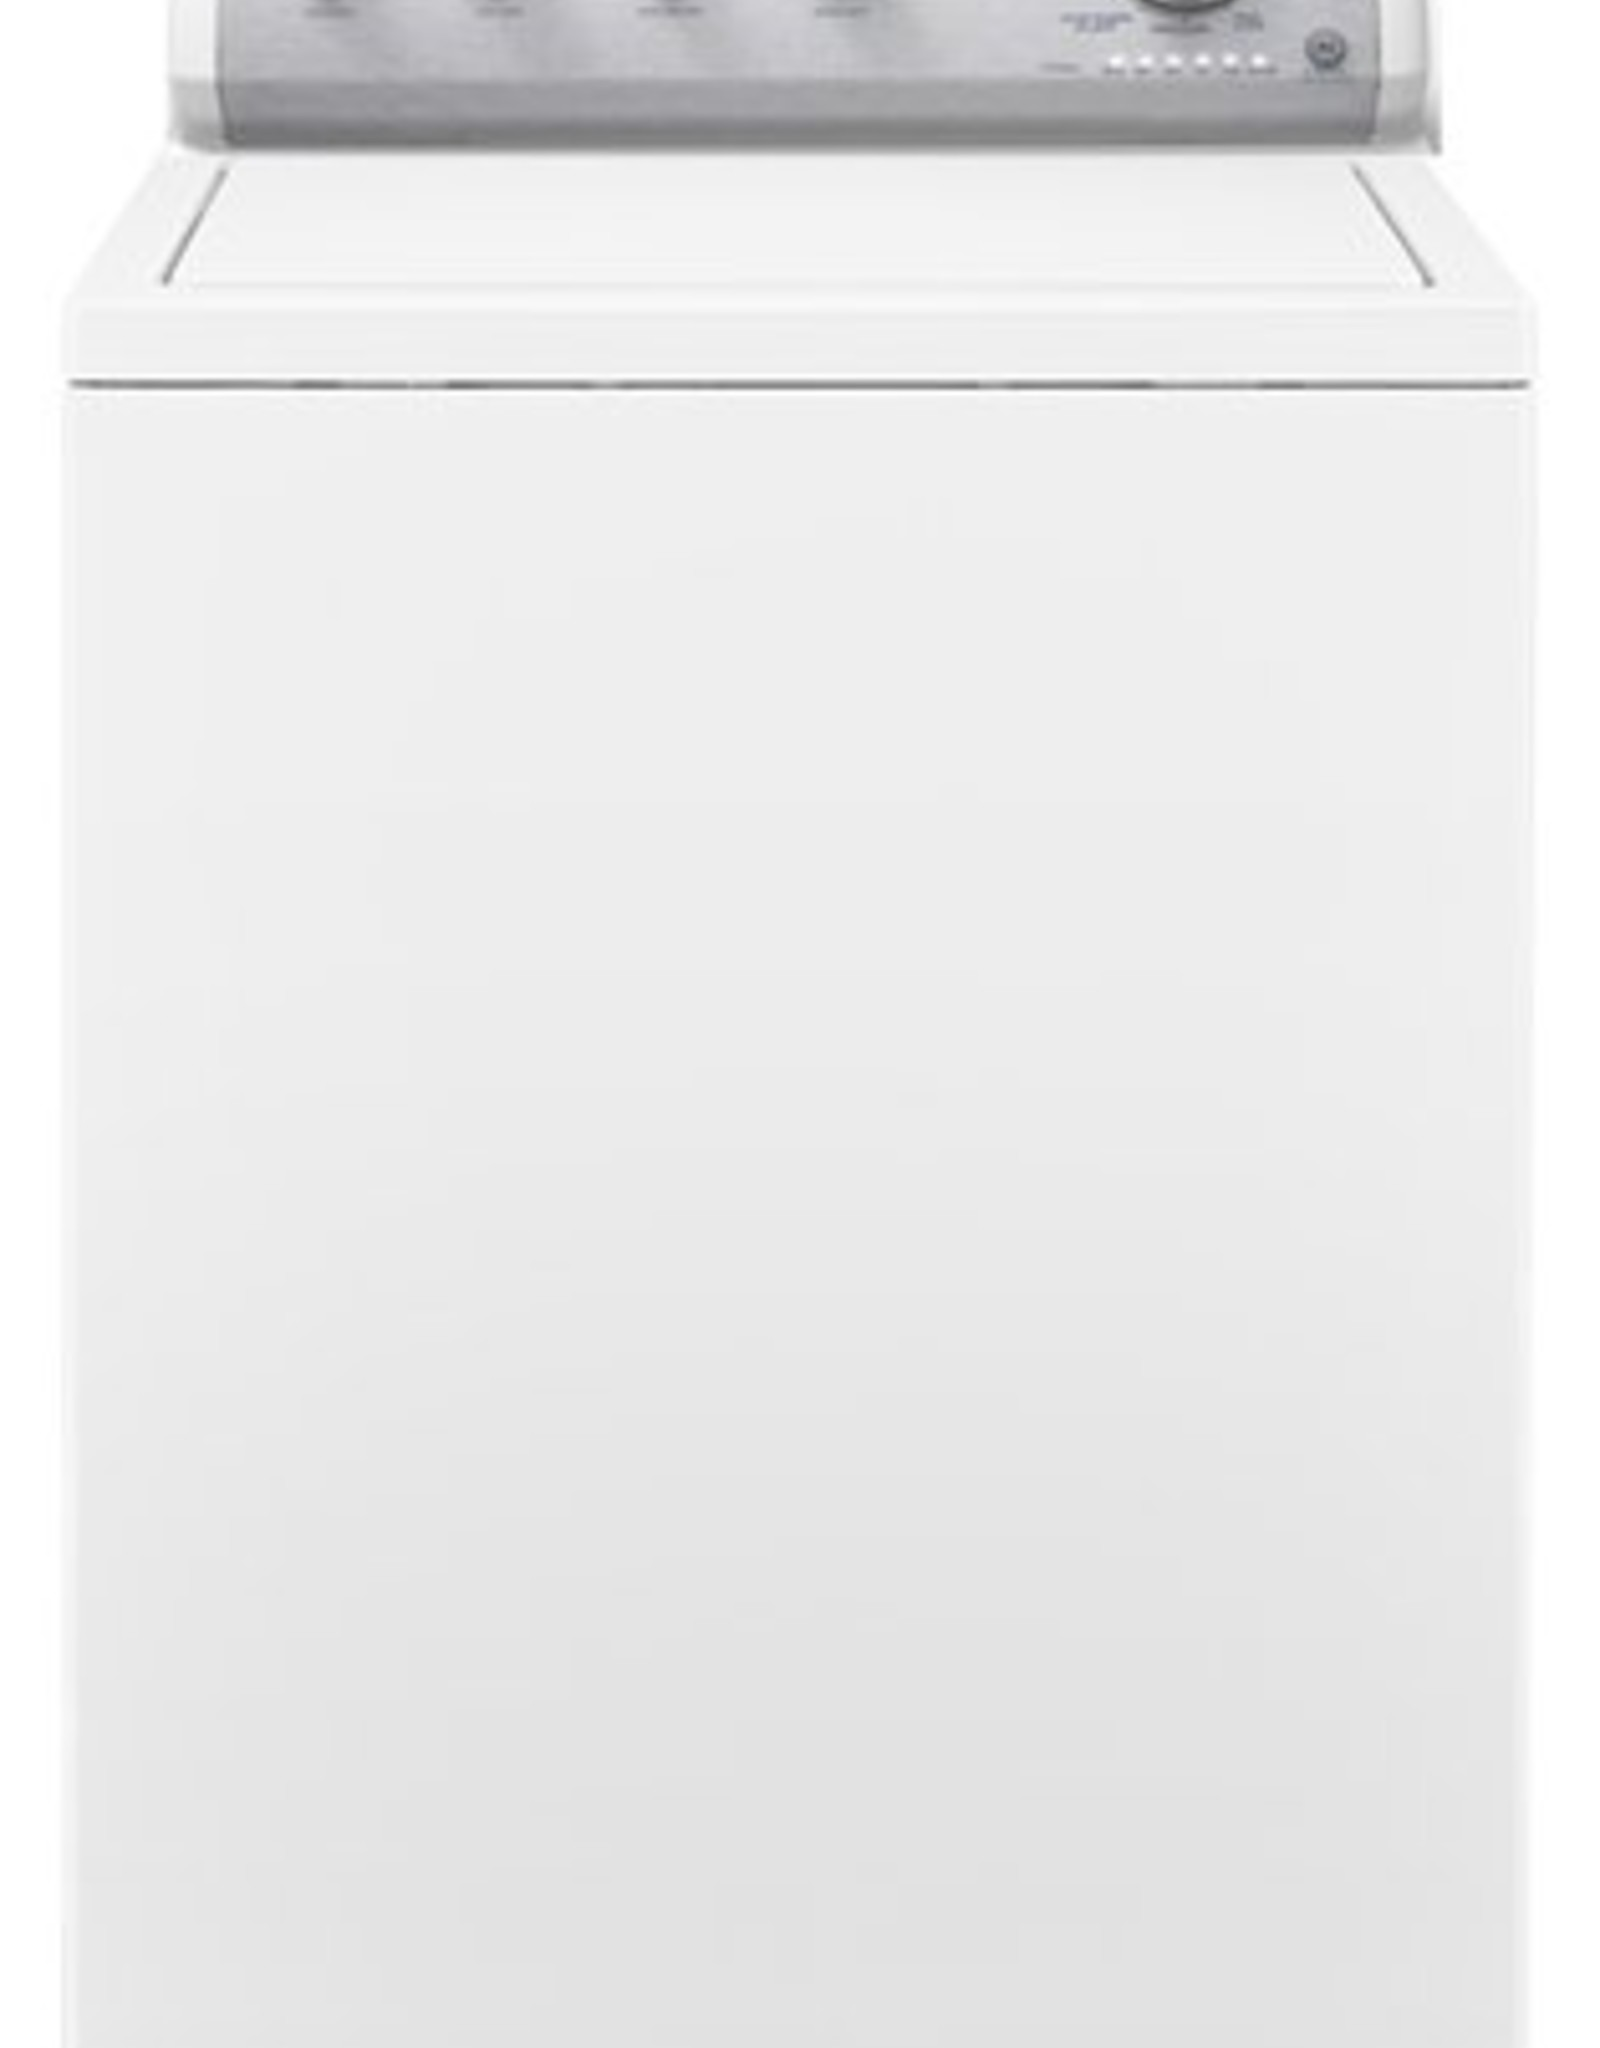 CLS Crosley 3.5 Washer